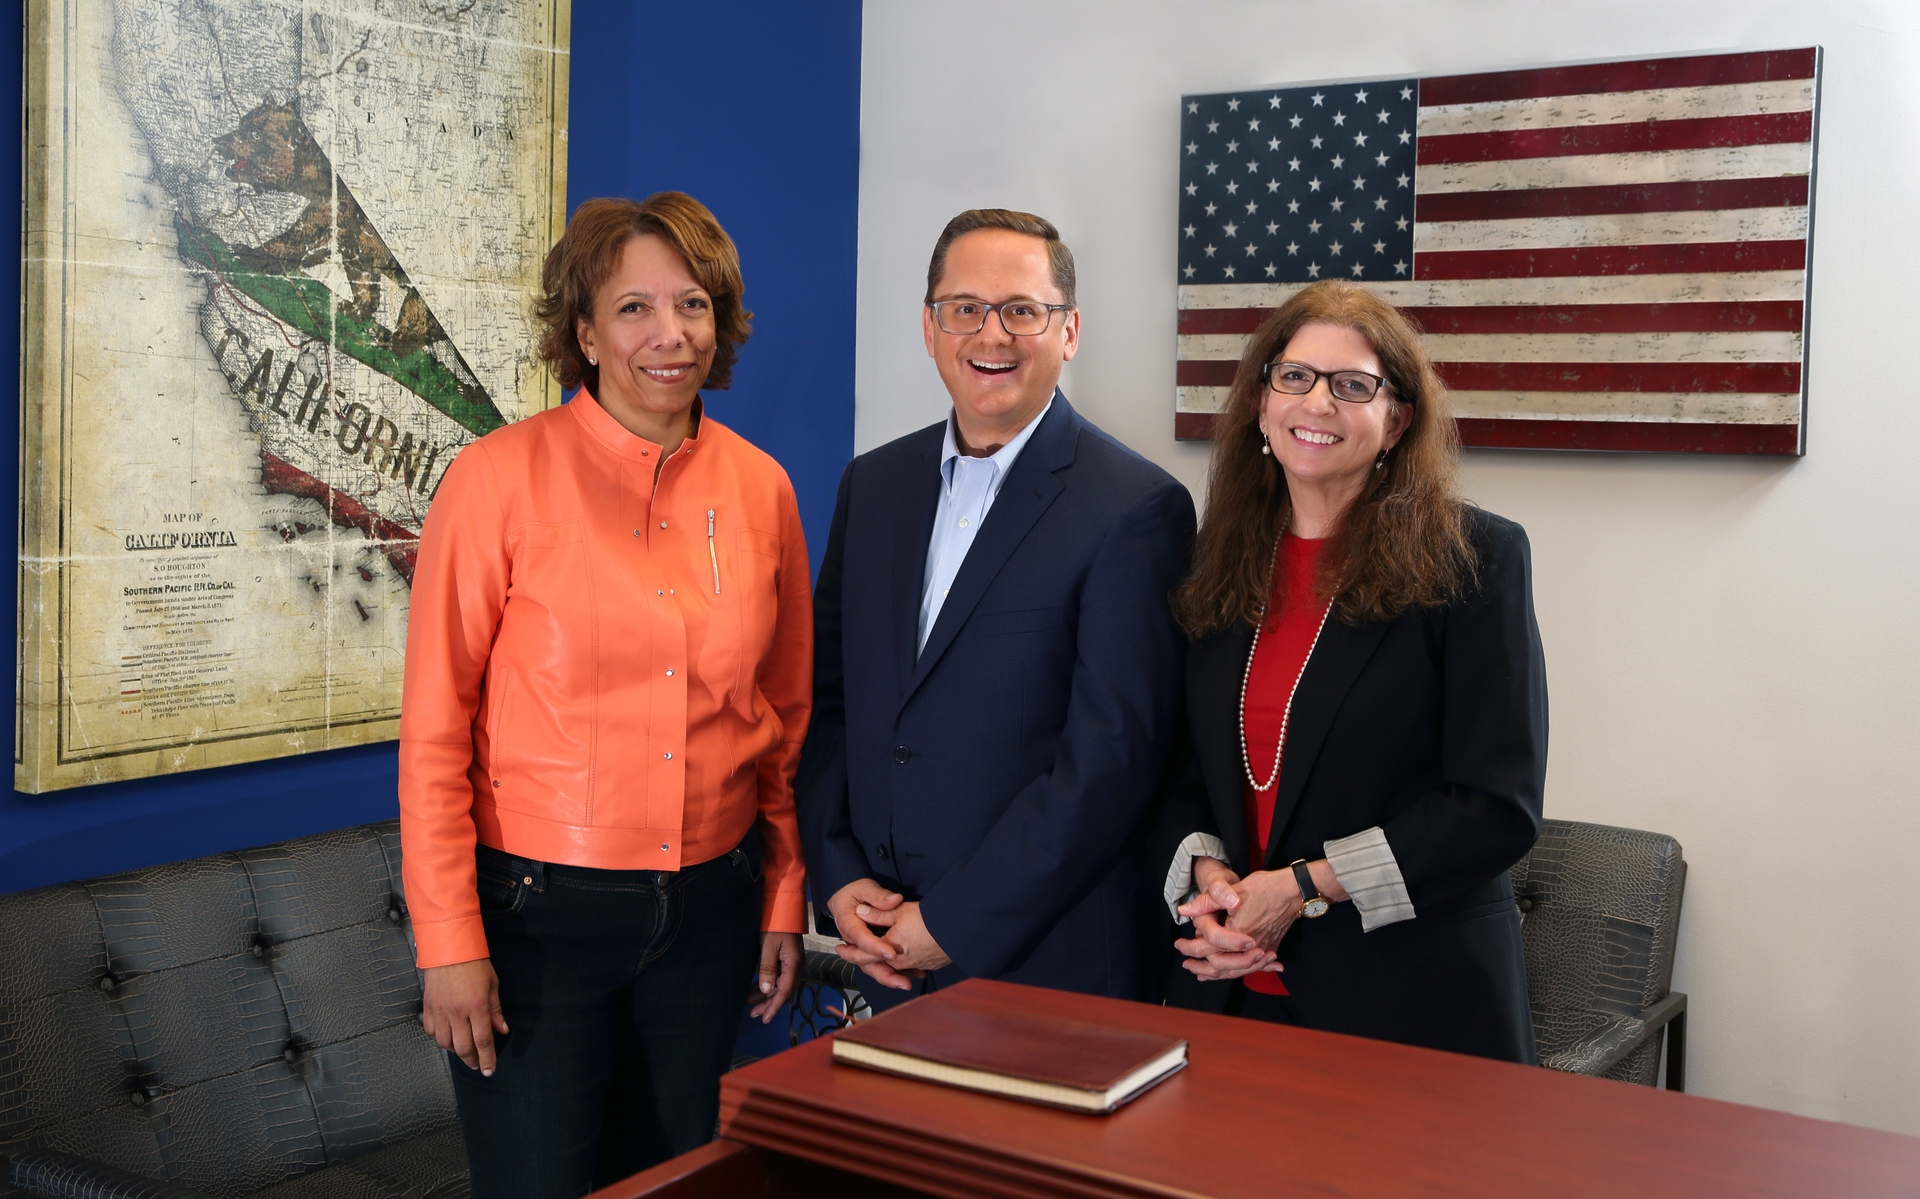 David Herbst, Janet Clayton and Sarah Catz of VECTIS Strategies